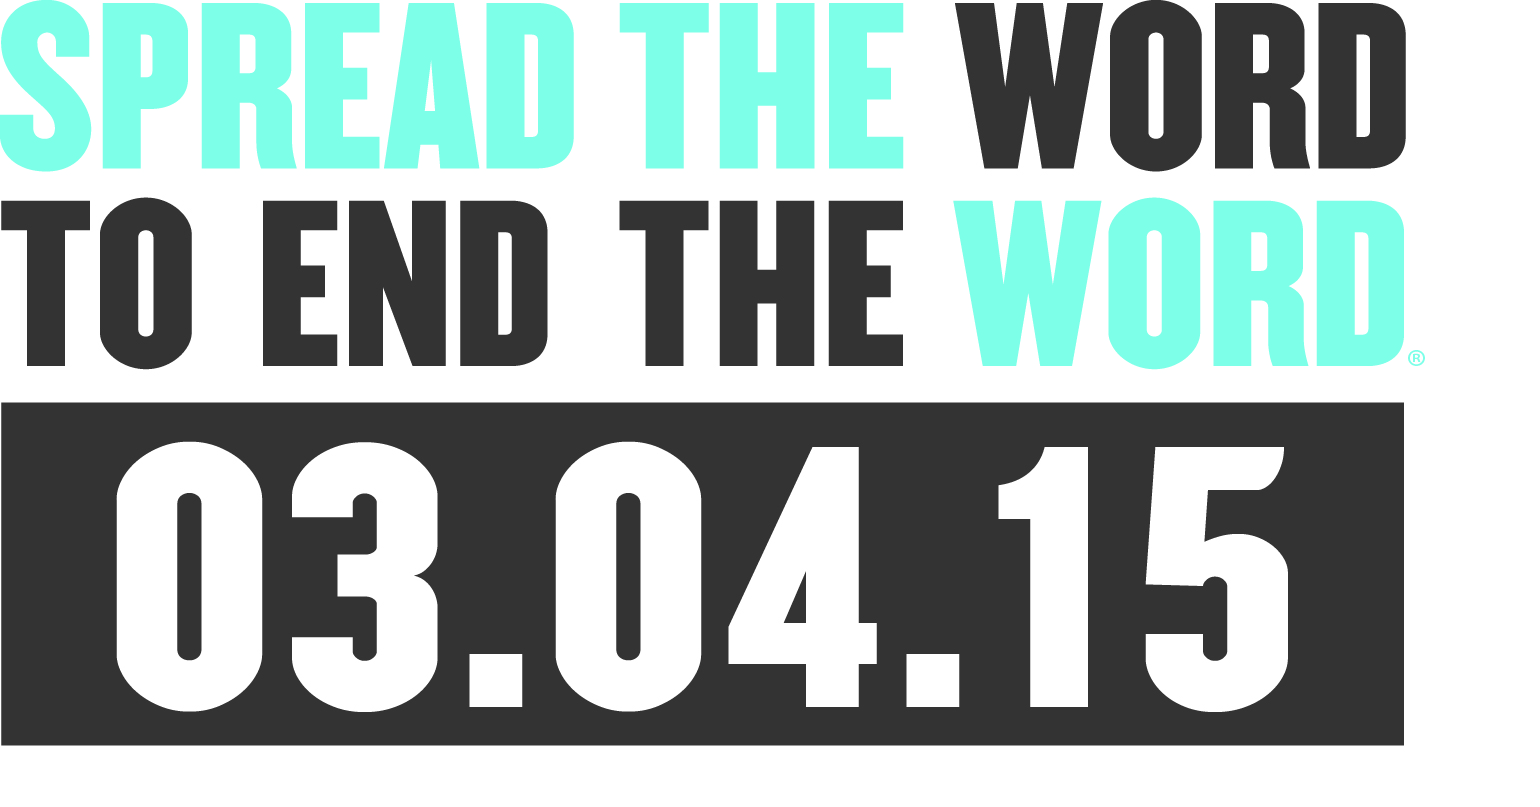 End the r-word banner 3.04.15